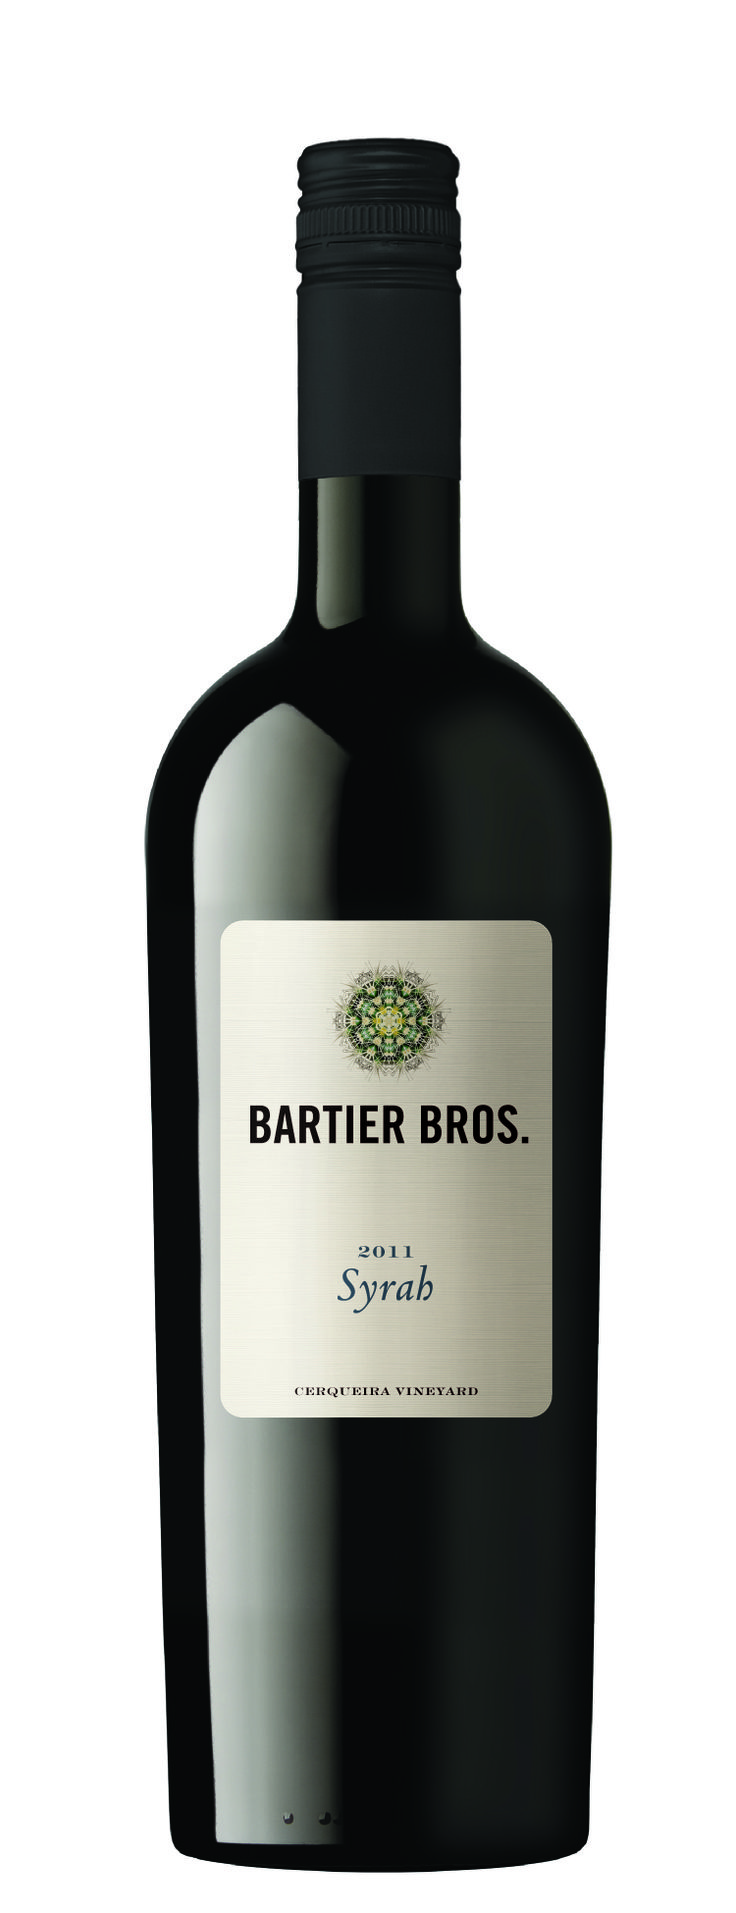 Bartier Bros. - 2011 Syrah - Beautiful complex aromas that are juicy, peppery, and bright. Medium bodied on the palate, very refreshing, with fine, assertive tannins. Classic match to peppercorn steak or grilled sausages. #bcwine #bc #okanagan #wine